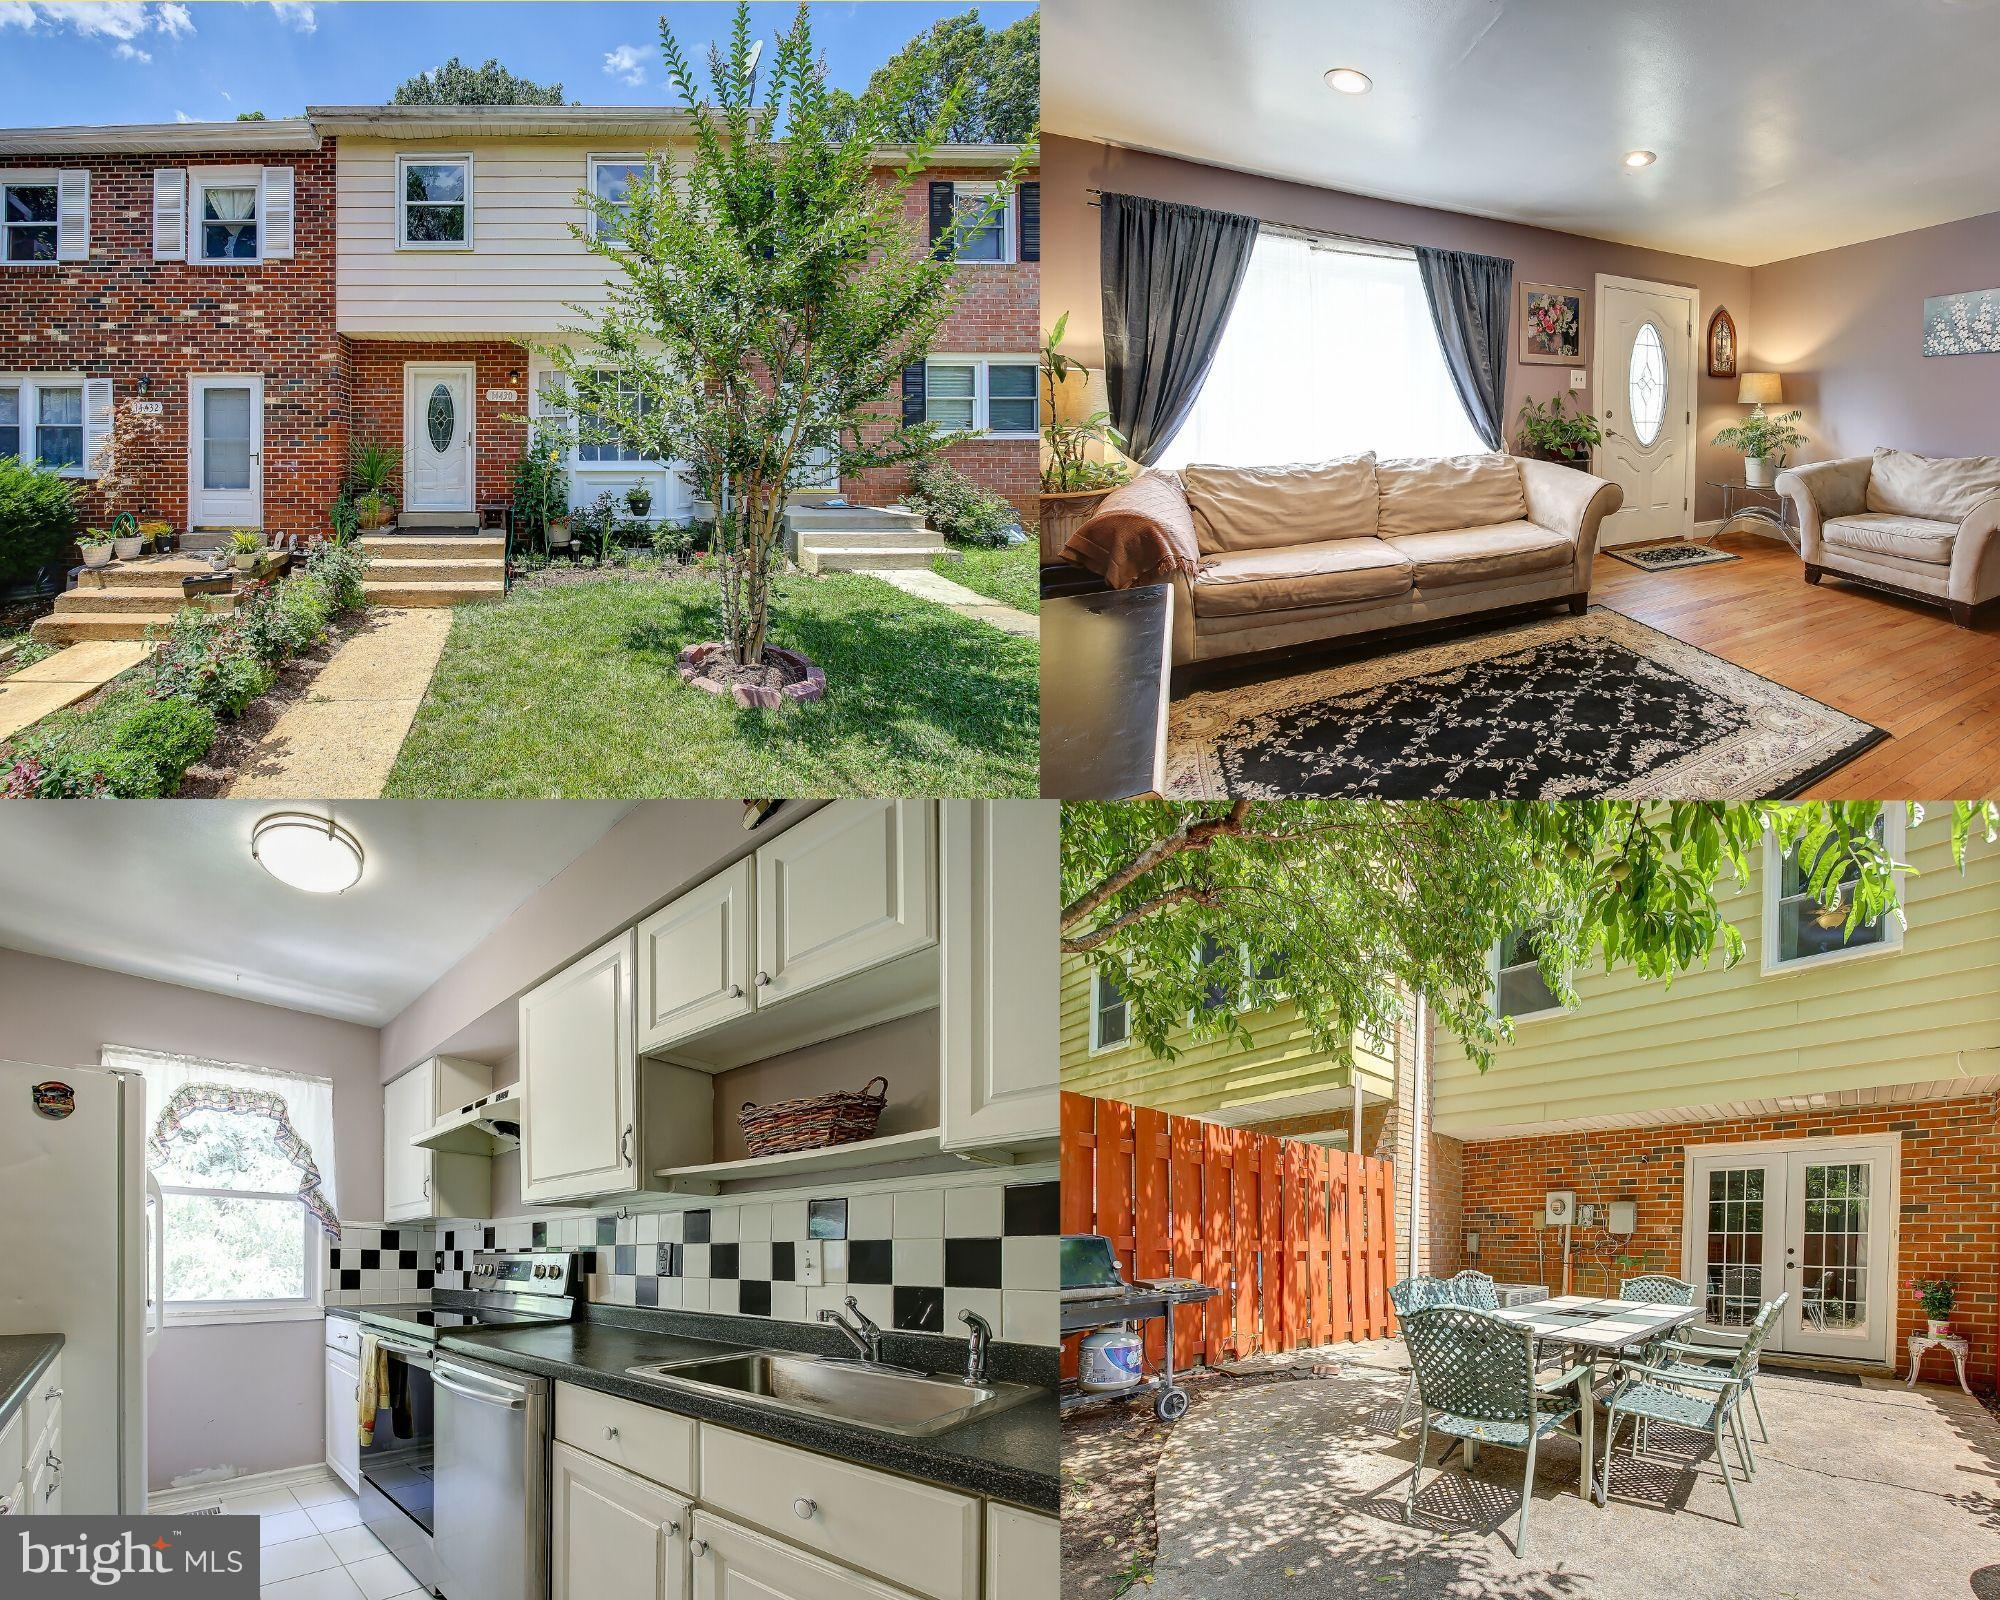 Lovely 3 level townhouse awaits your personal touches to make it yours! Conveniently and centrally